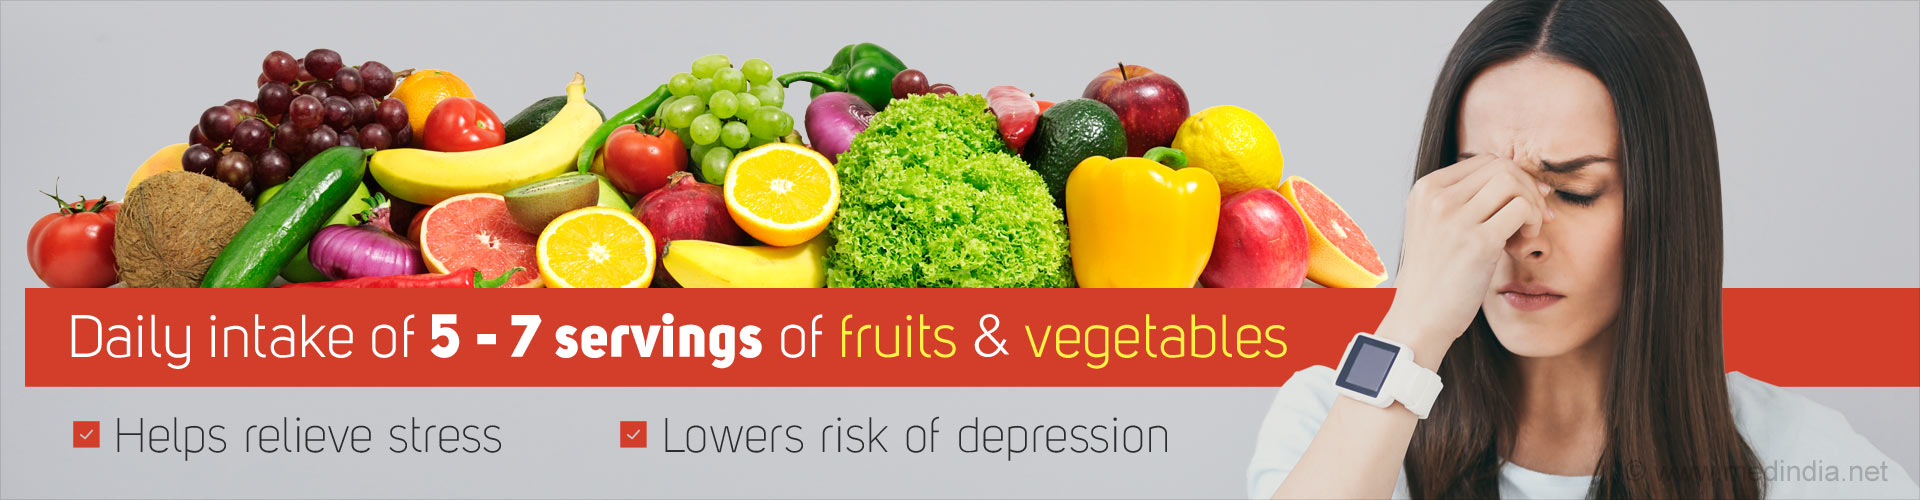 Daily intake of 5-7 servings of fruits & vegetables